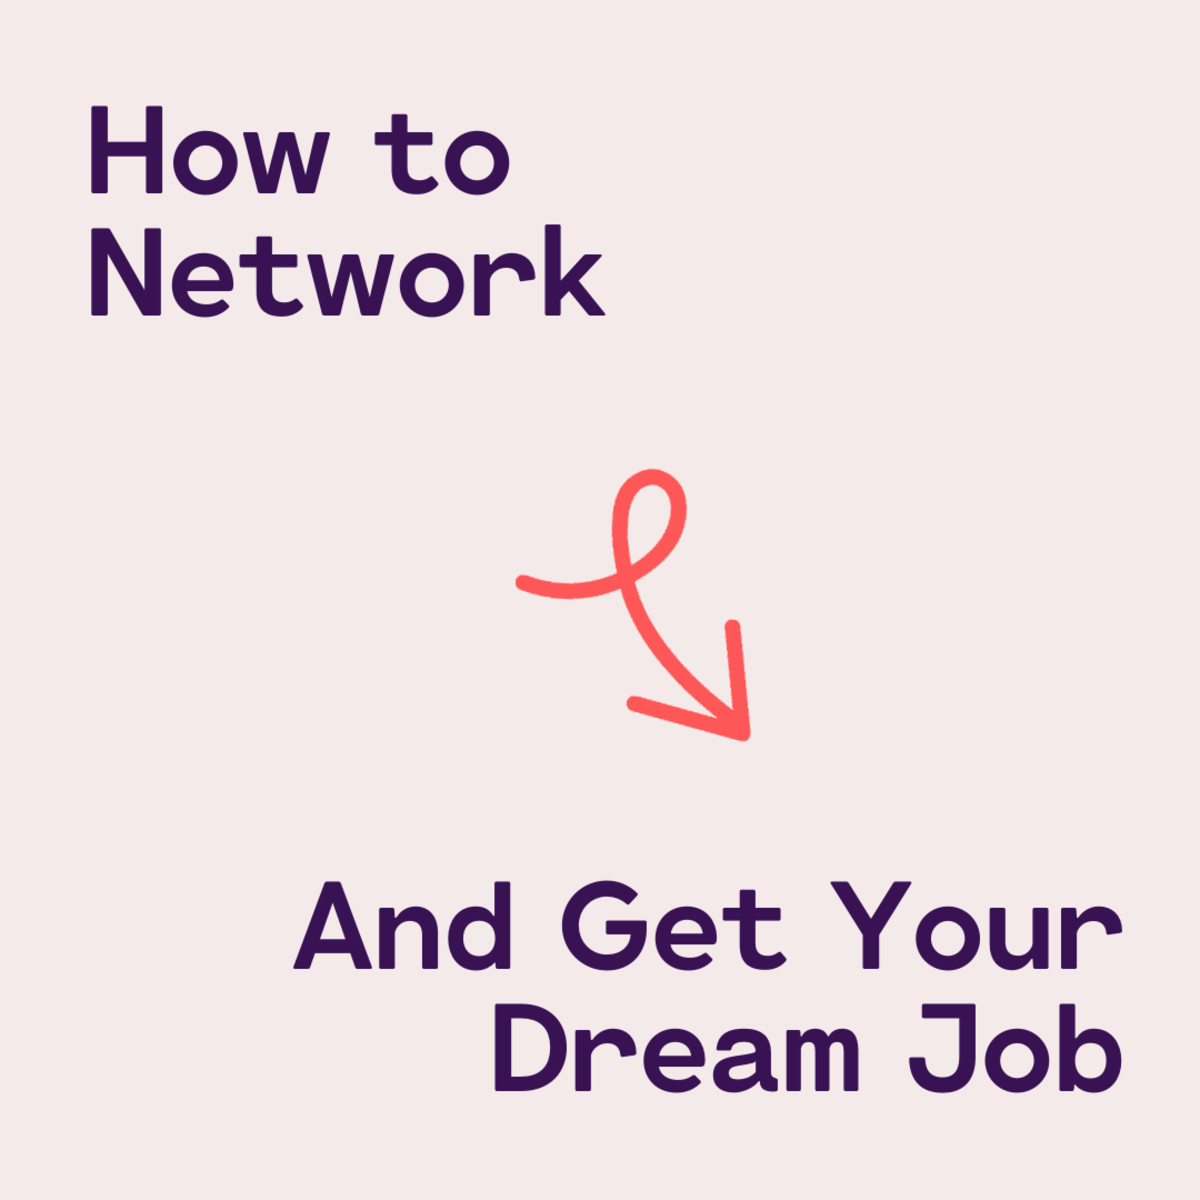 Networking Is the Best Way to Get Hired